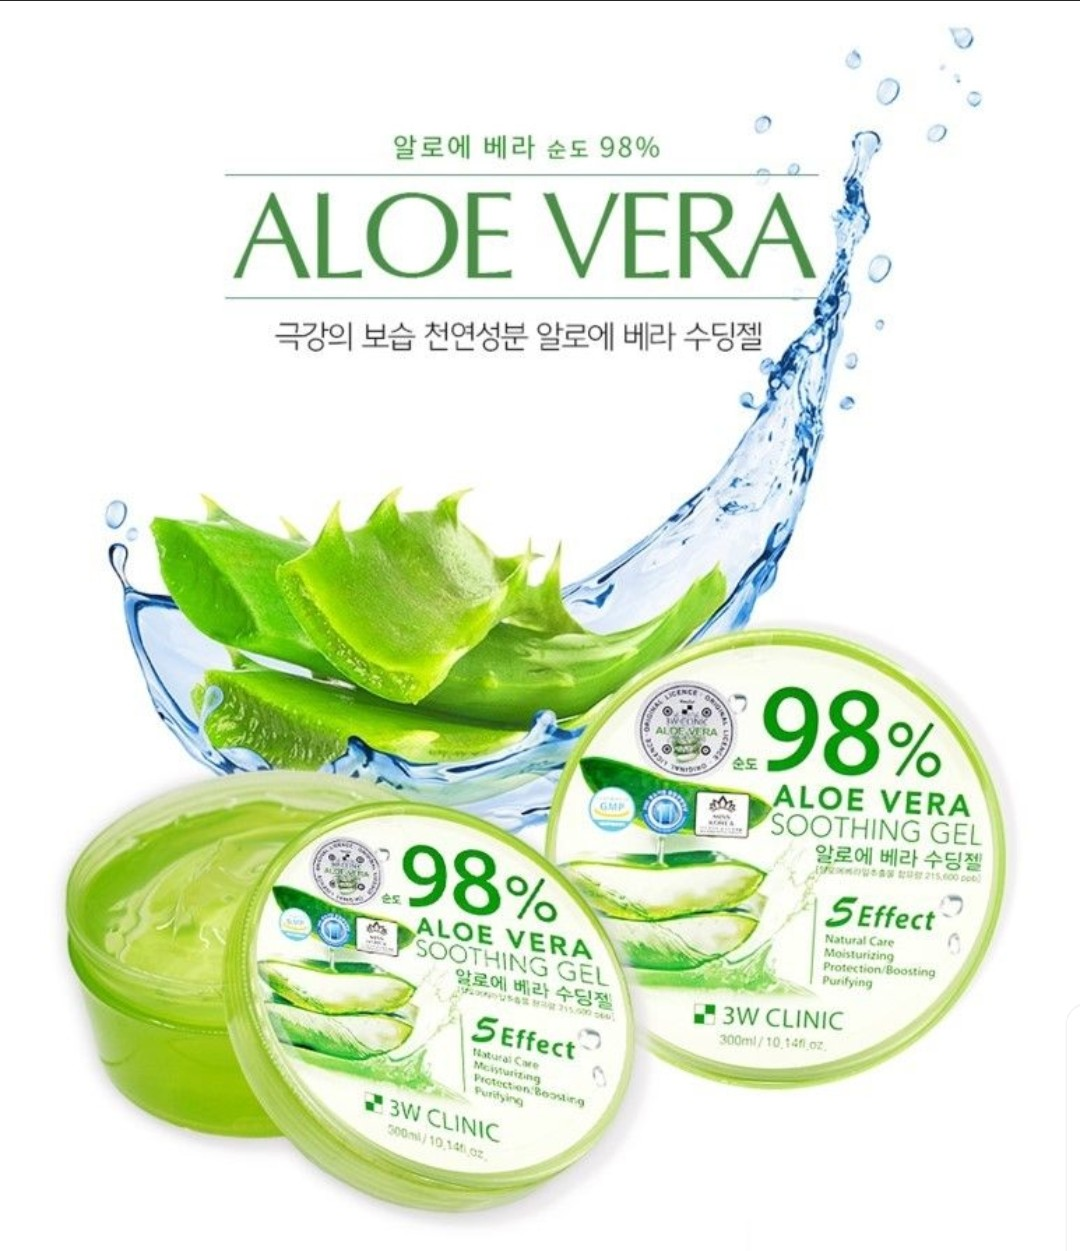 3w_clinic_98_aloe_vera_soothing_gel_300g_1535858487_44029be0.jpg